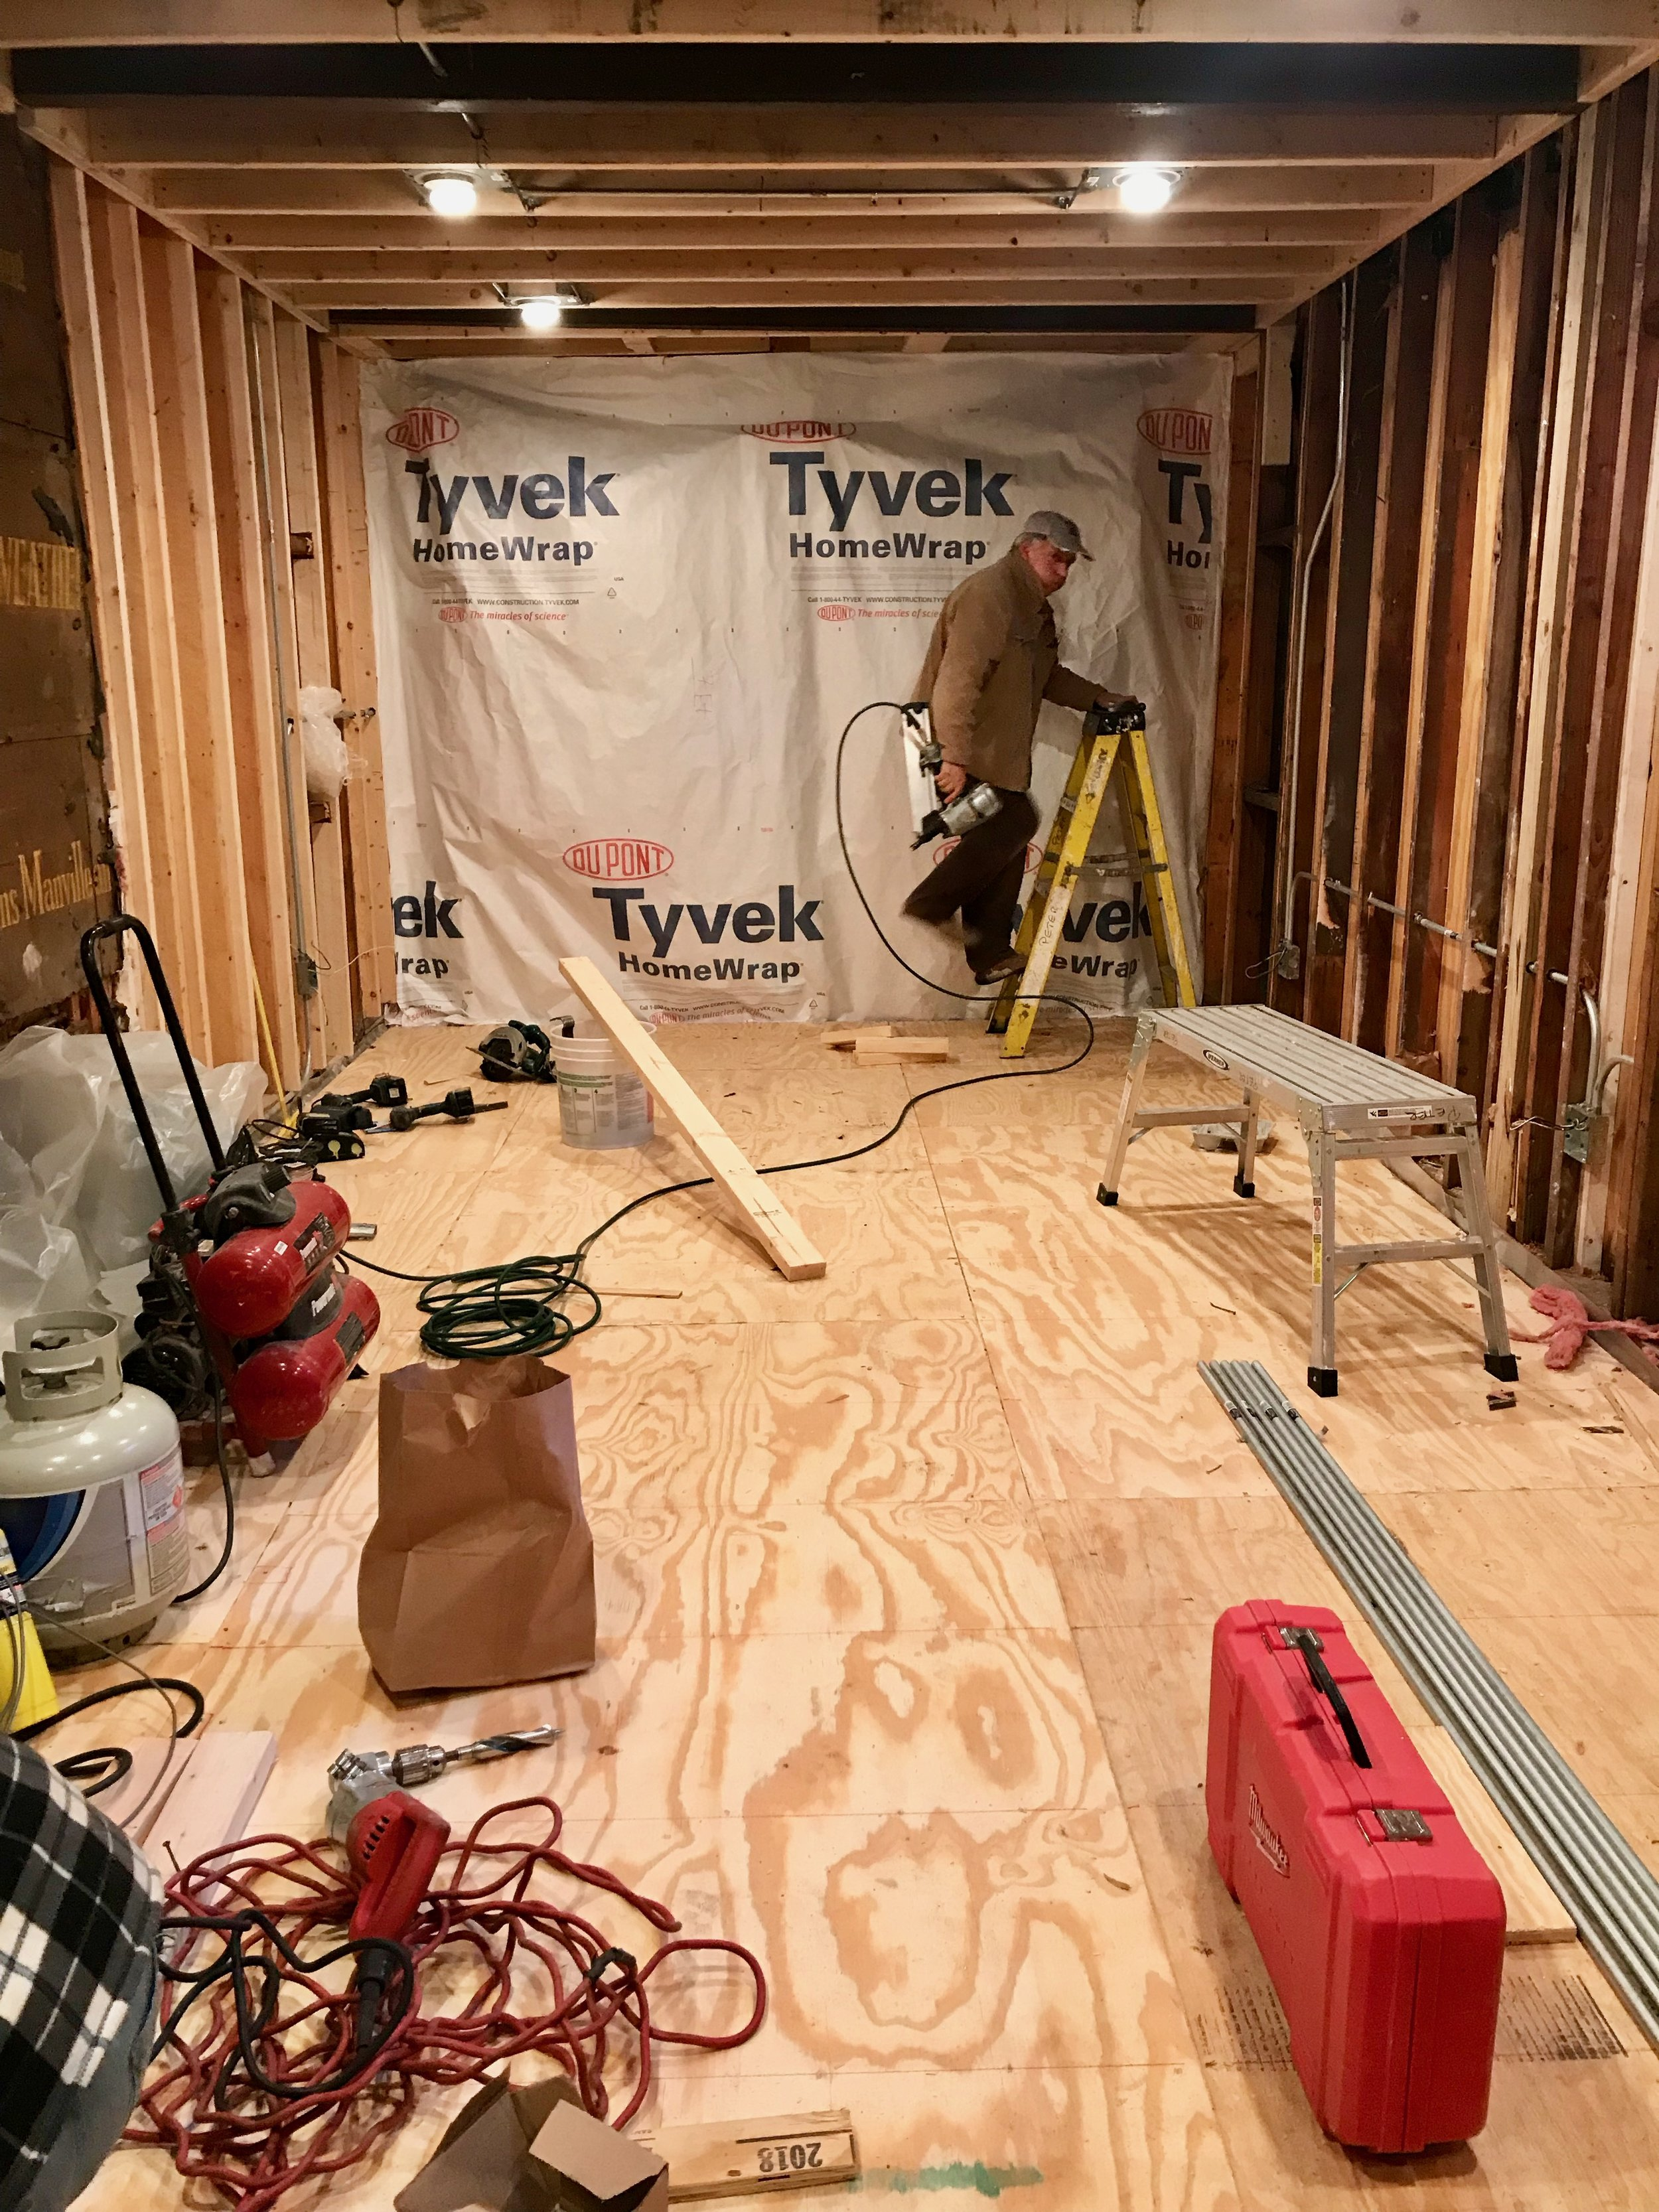 "Under the 3/4"" plywood sub-floor is a vapor barrier, stud platform, and closed cell foam insulation. A minor amount of disassembly and demolition would be required to revert to a functional garage in the future."